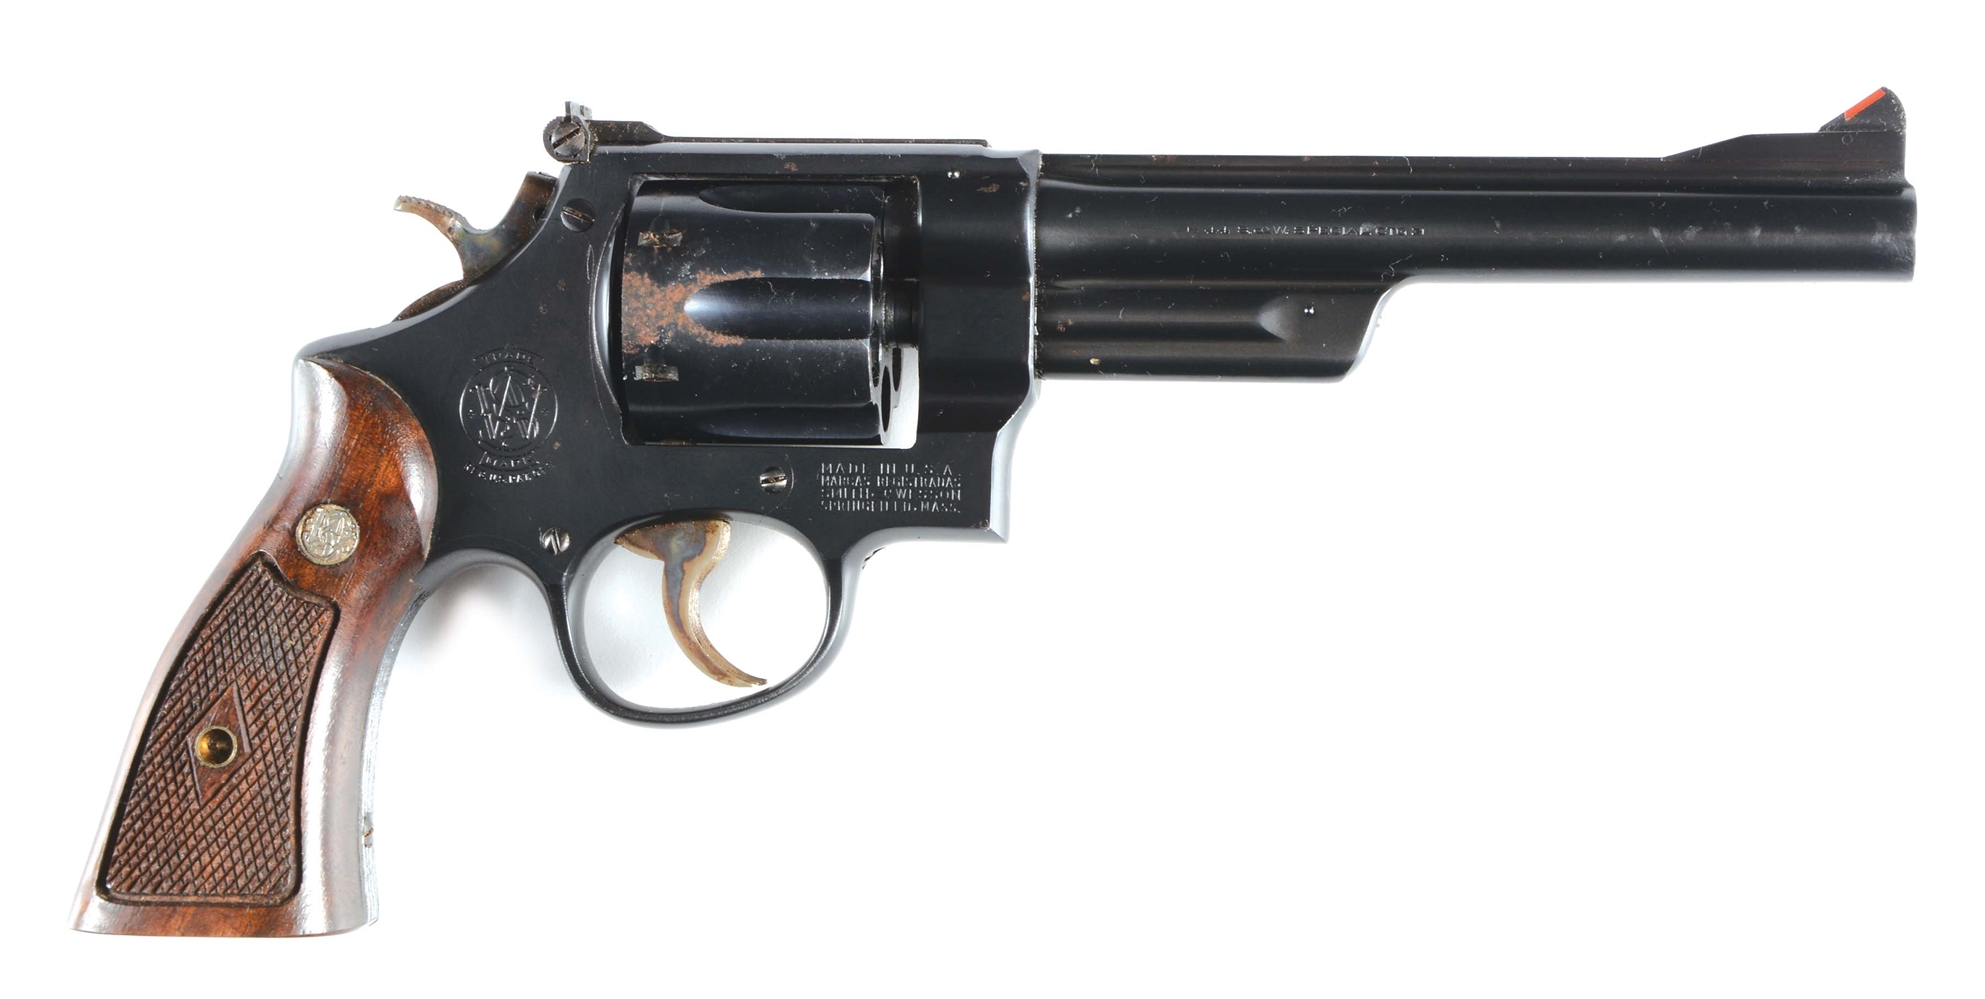 (C) SMITH & WESSON 1926 MODEL TARGET REVOLVER.